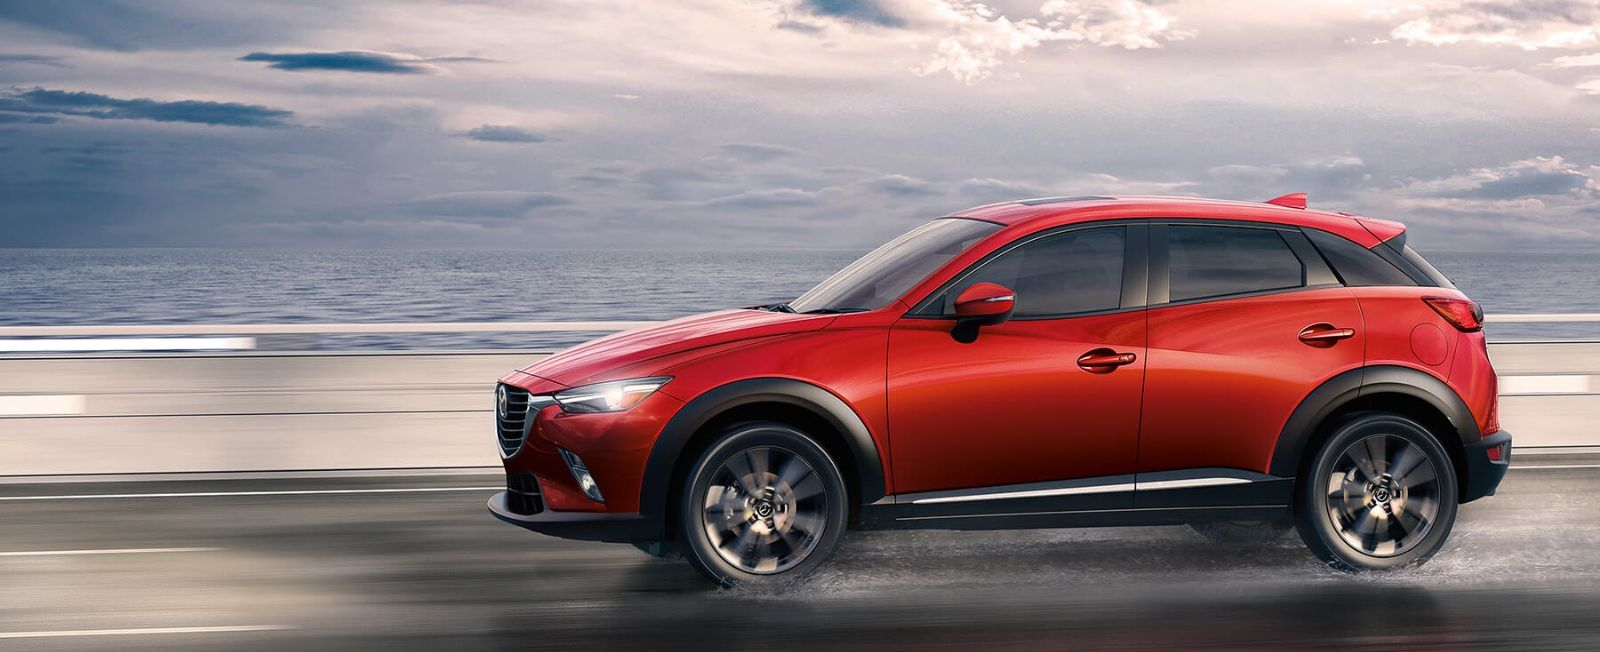 2017 Mazda CX-3 for Sale in Webster, TX - Mazda of Clear Lake